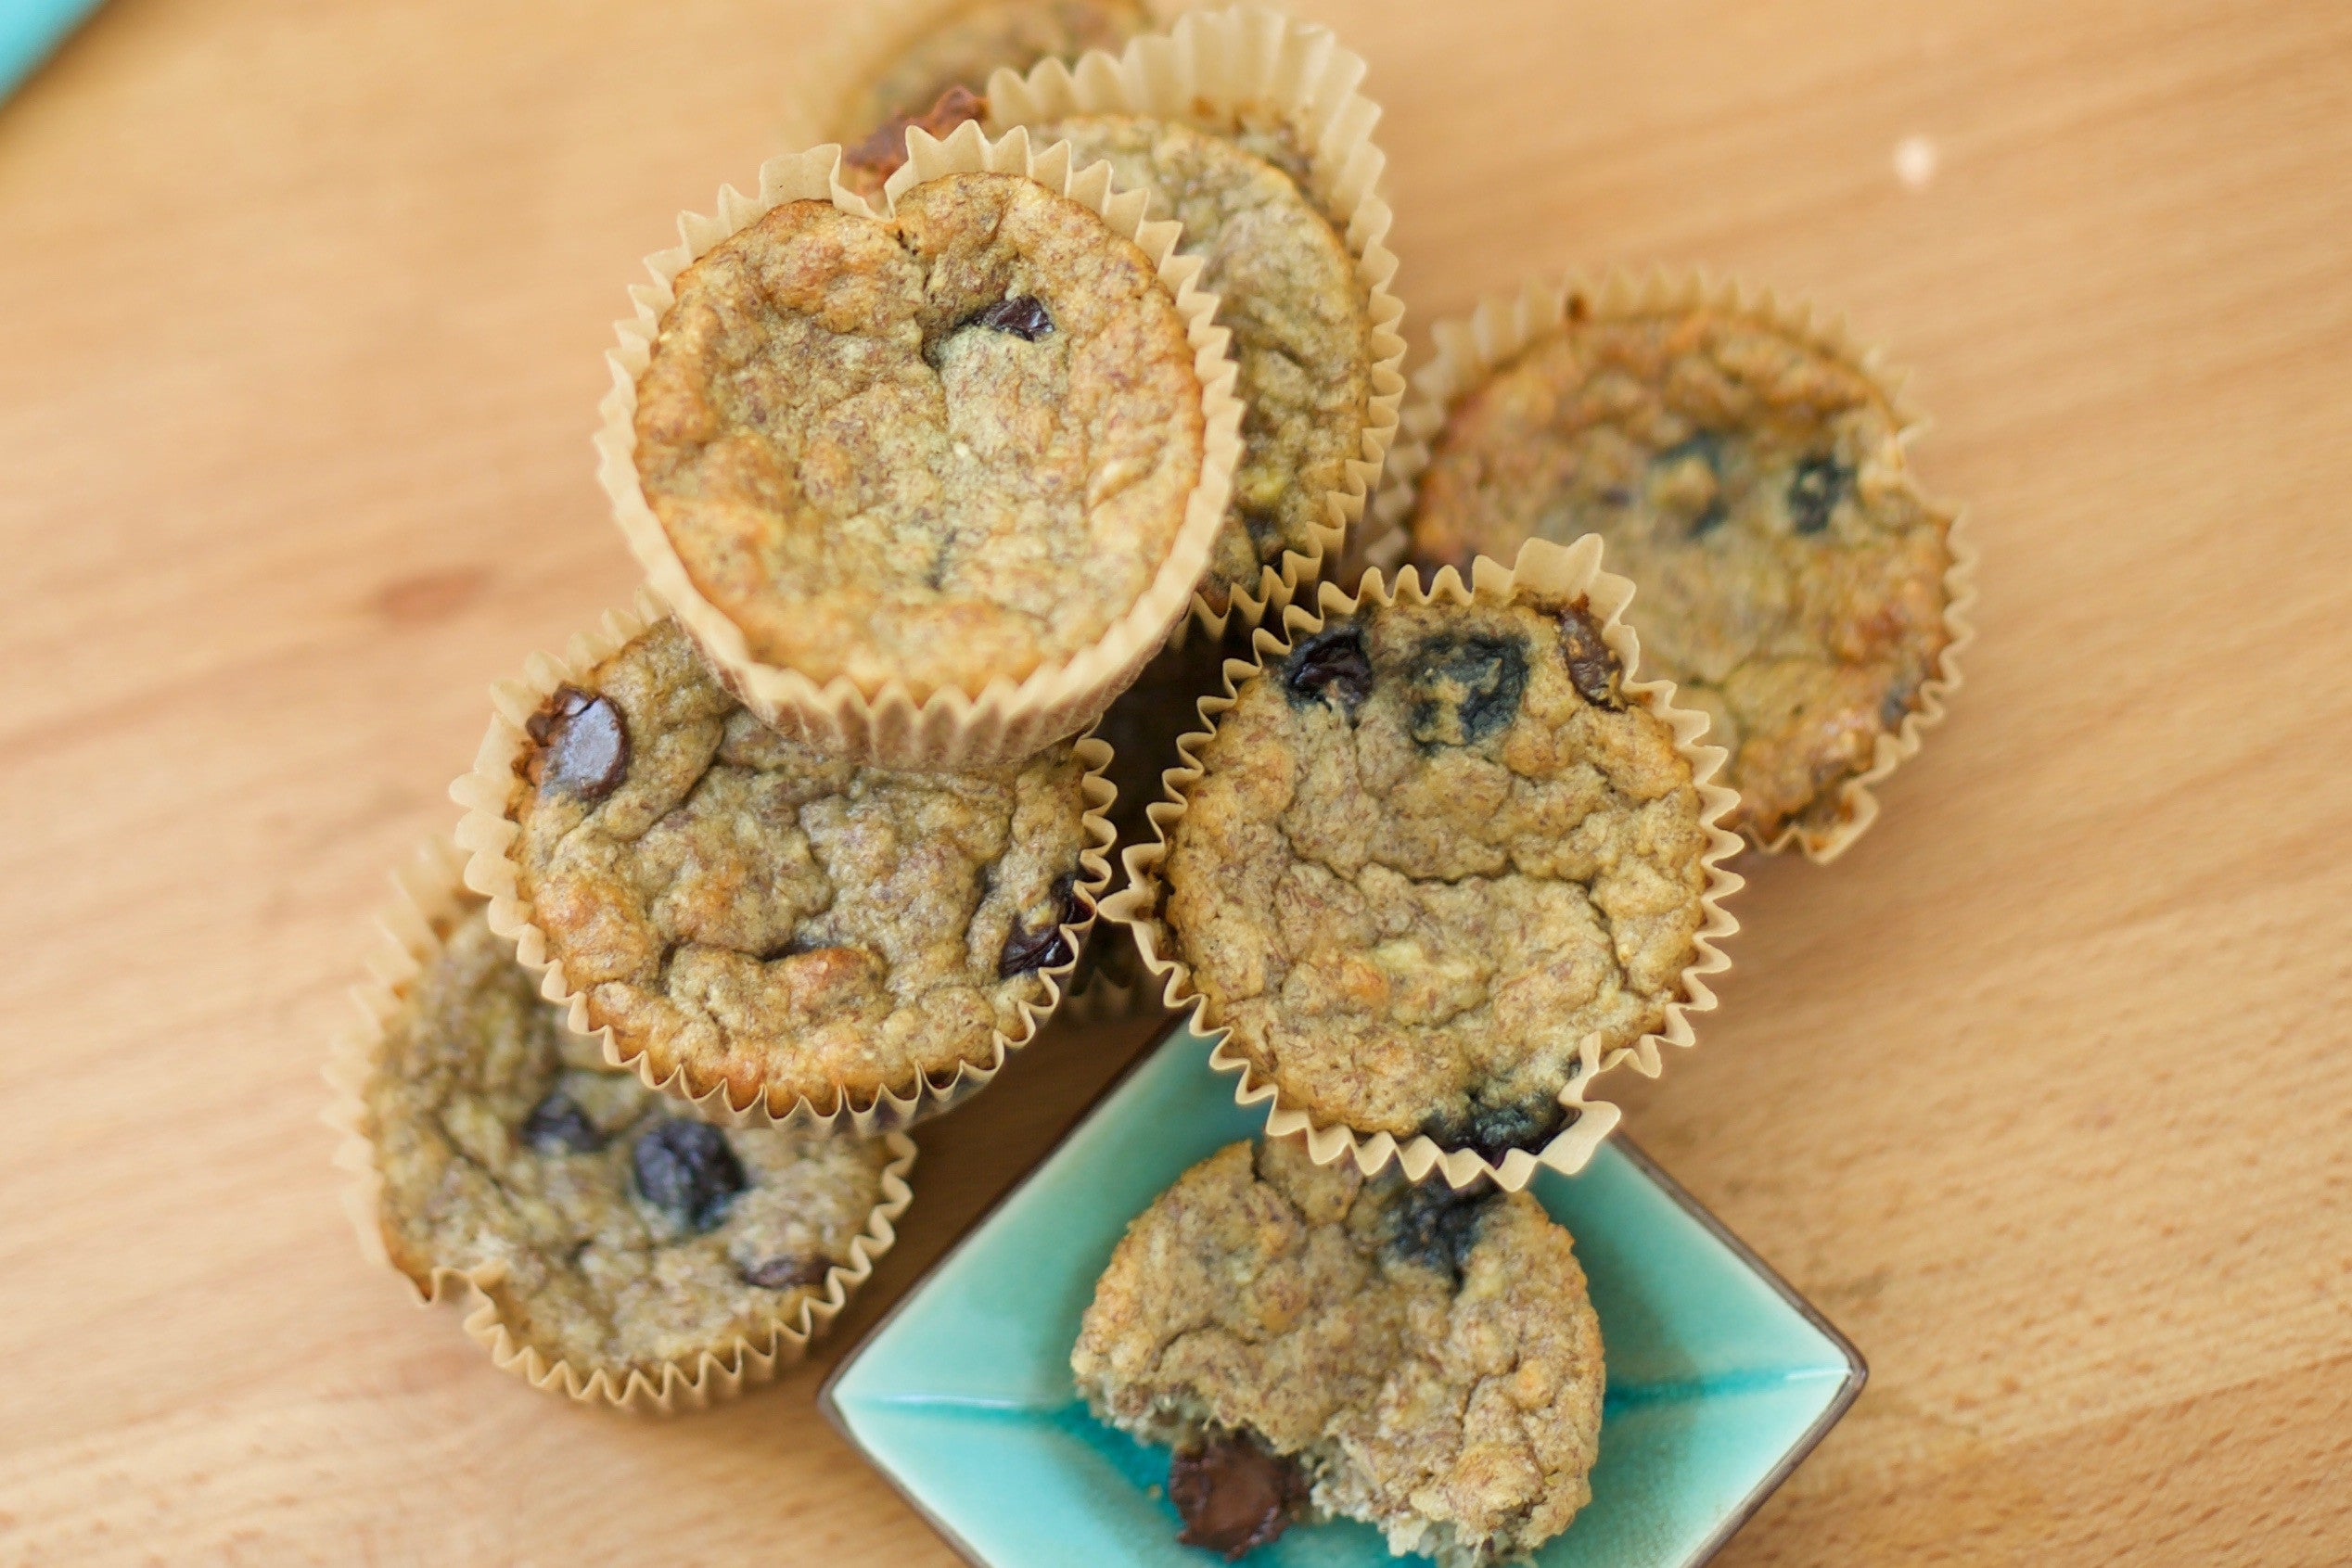 Nutrient Dense Blueberry Chocolate Chip Banana Muffins (Gluten Free!)